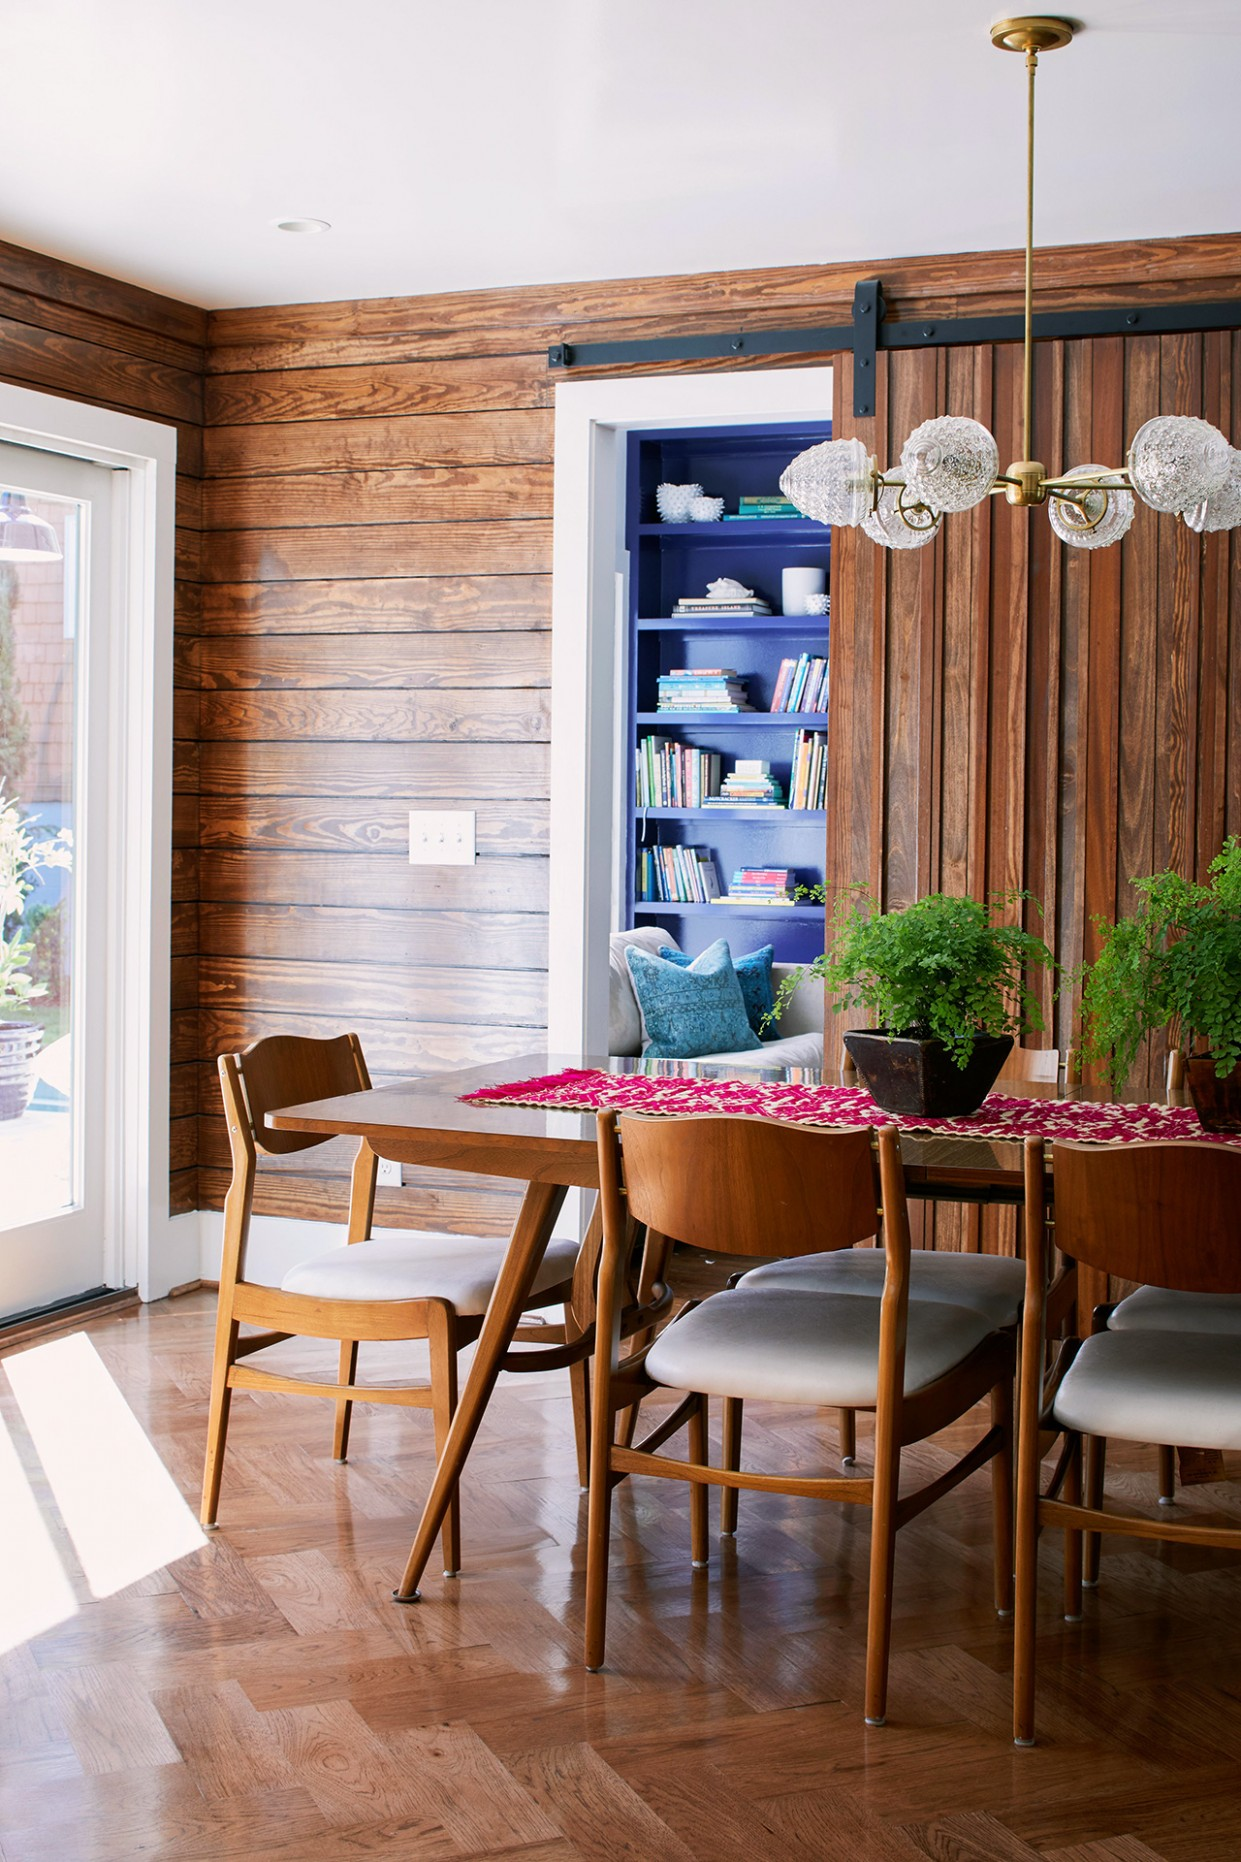 Our Favorite Dining Room Decorating Ideas  Better Homes & Gardens - Dining Room Ideas With Oak Furniture